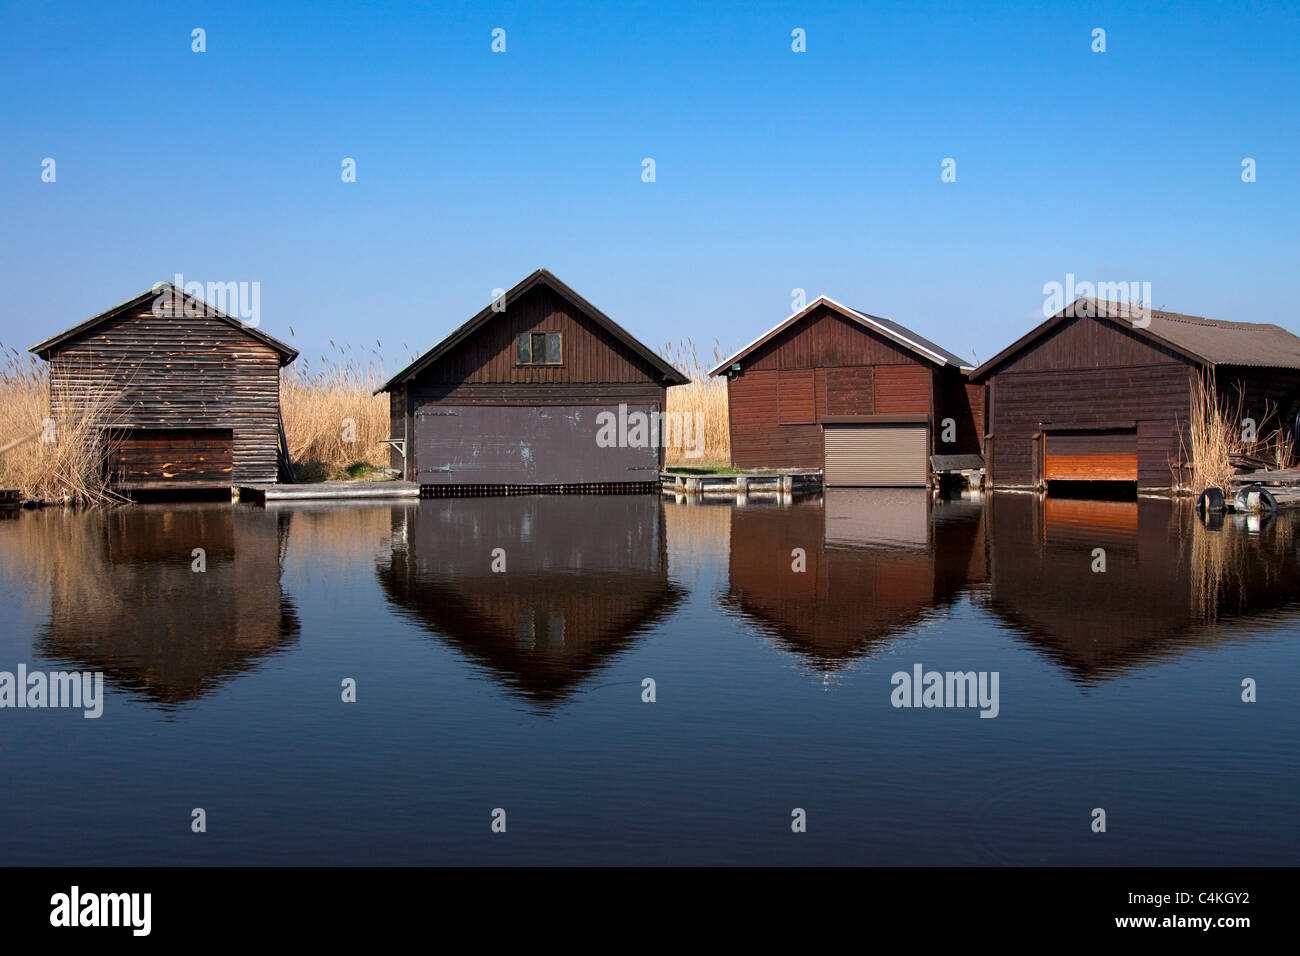 Wooden boat houses along Lake Neusiedel at Rust, Burgenland, Austria Stock Photo